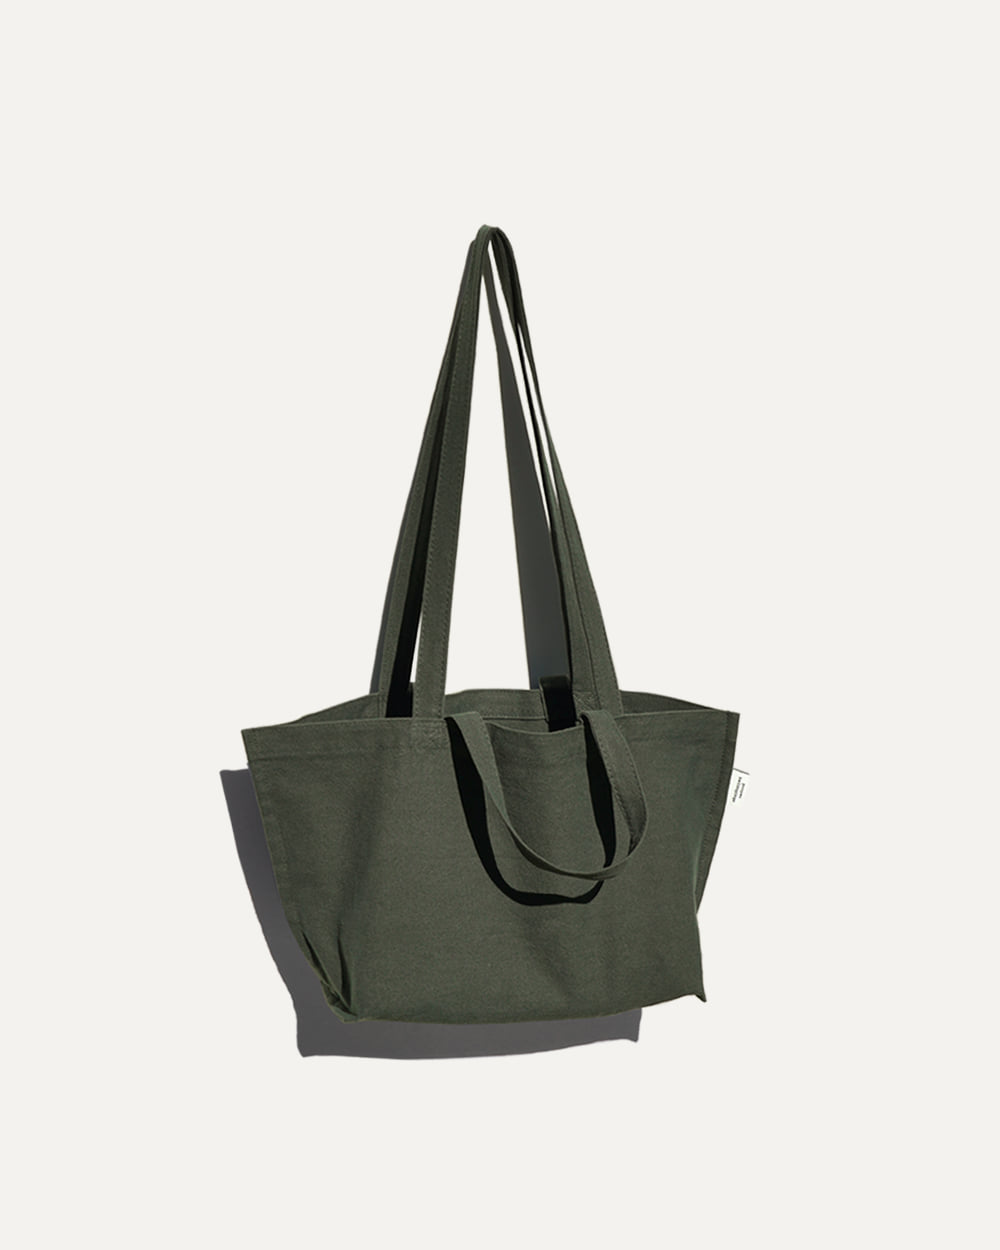 Four Seasons Bag / Small / Olive (사계절 천가방)